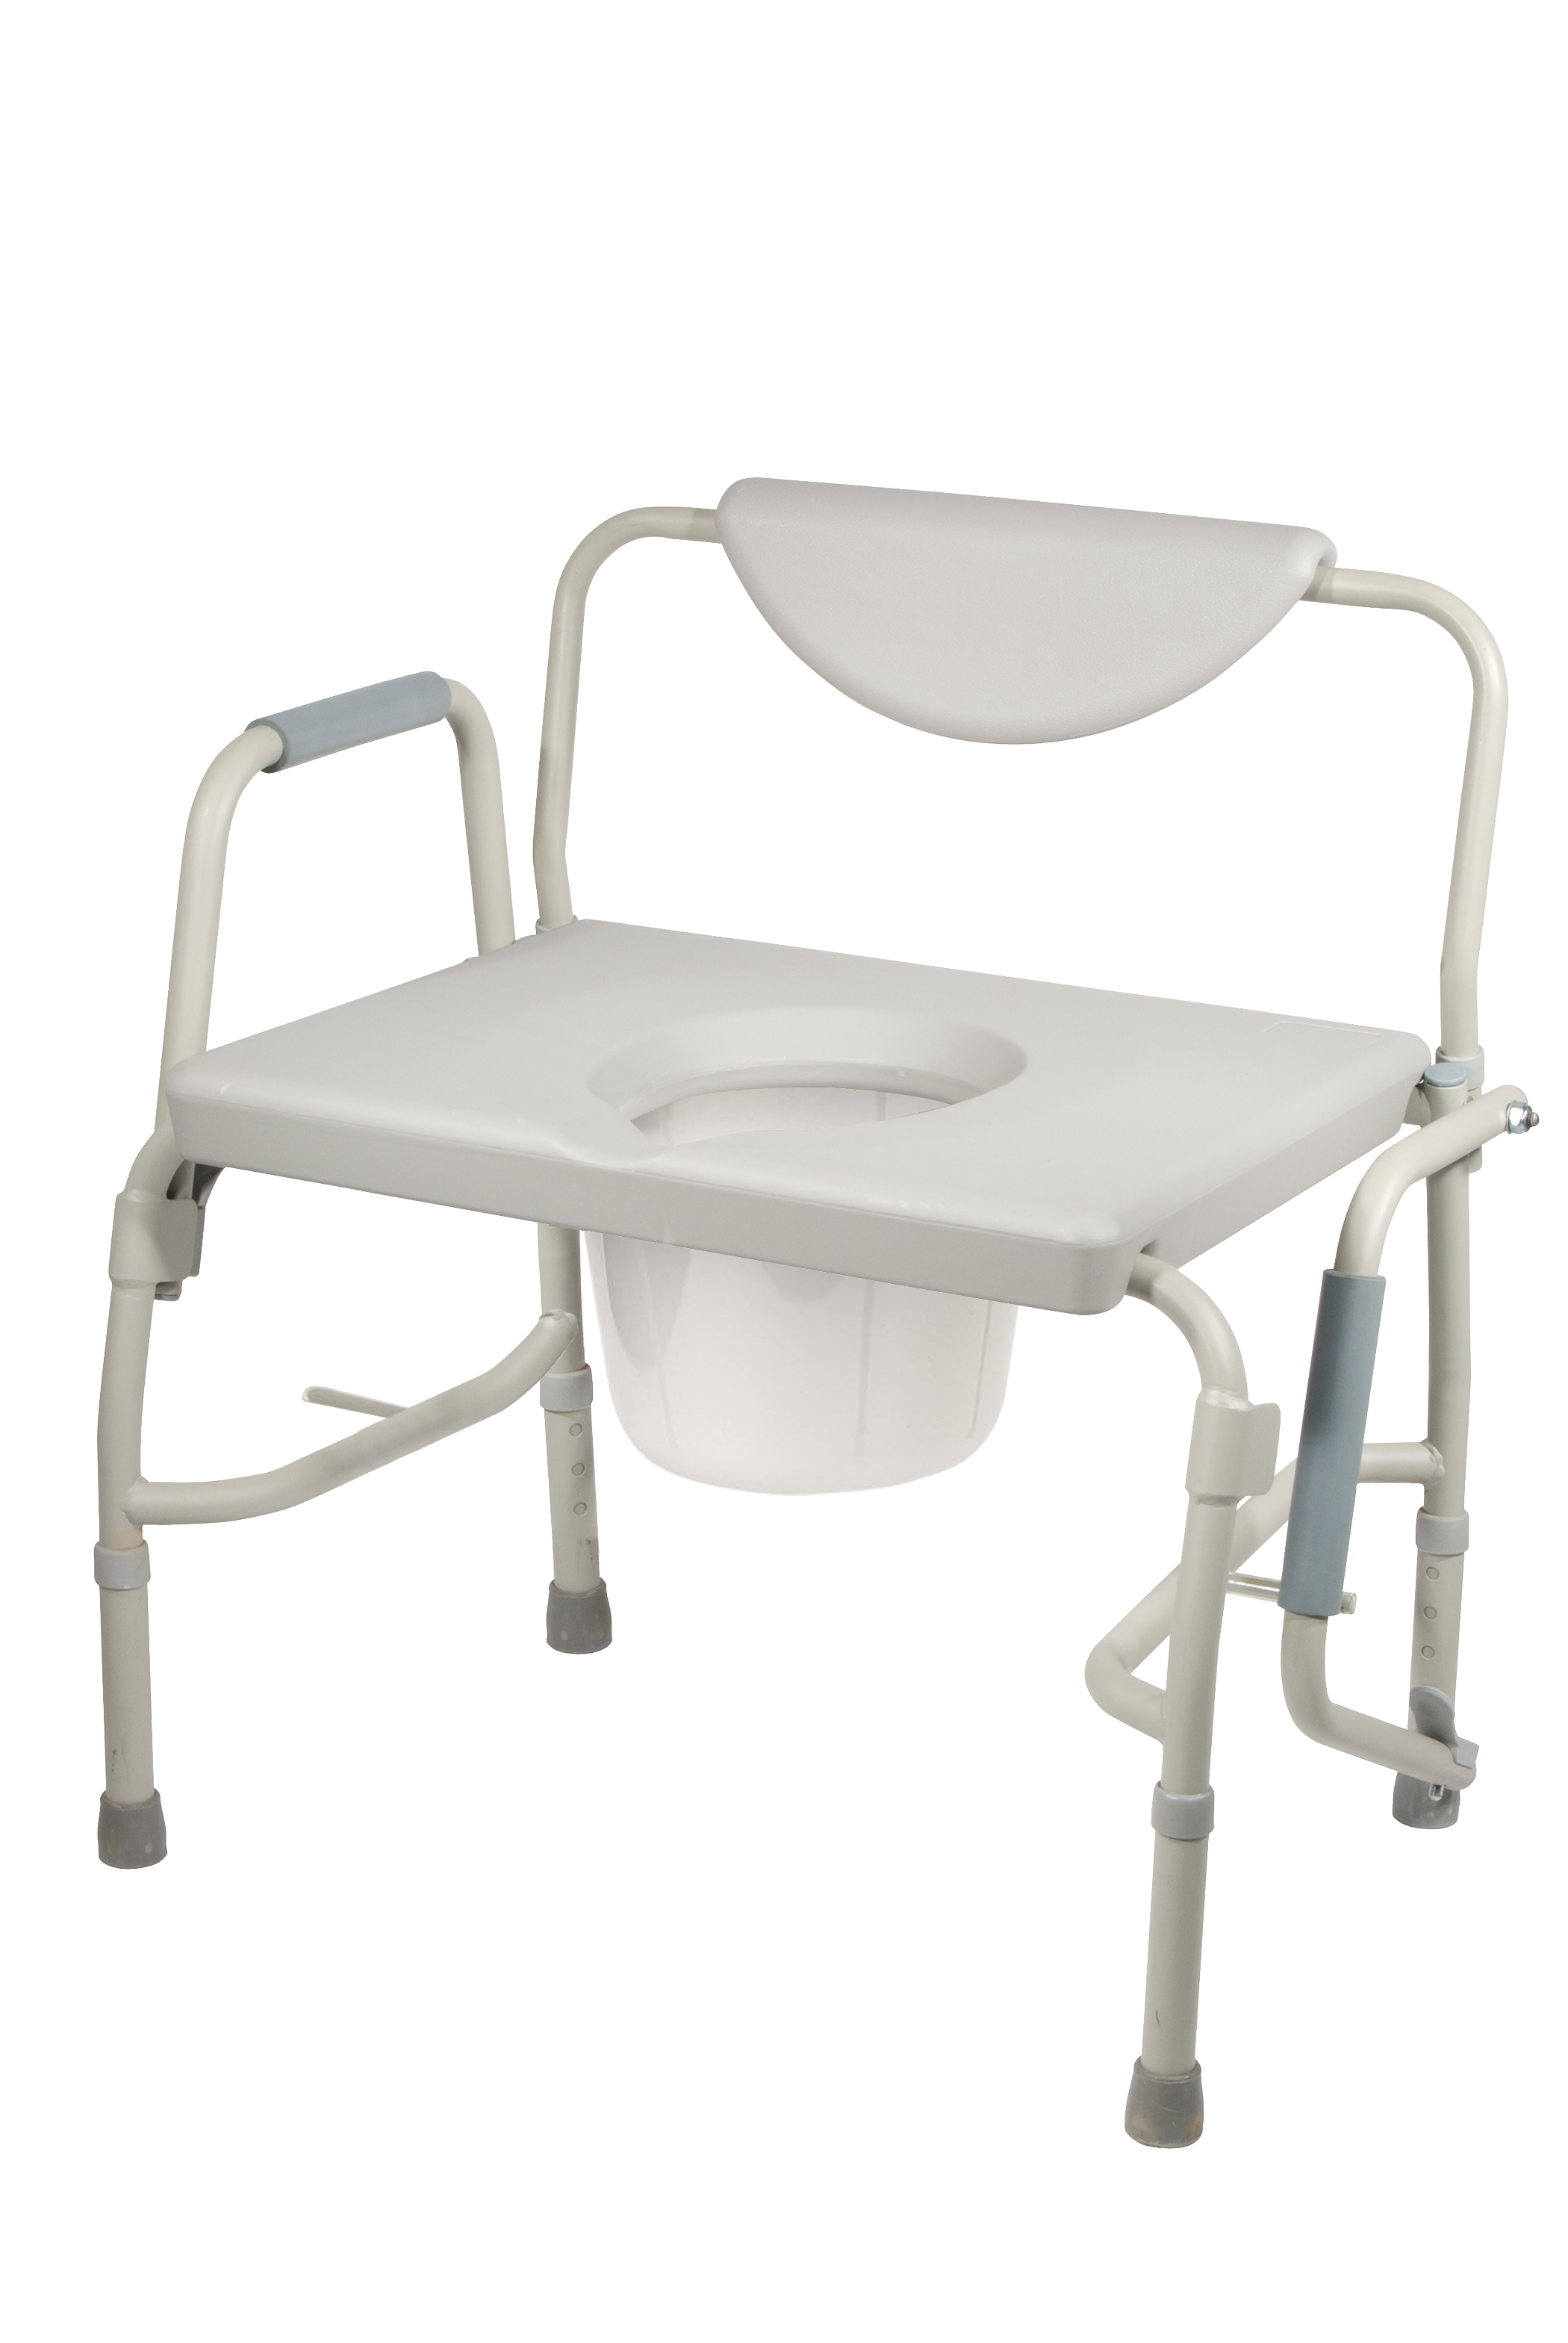 Drive Medical Bariatric Drop Arm Bedside Commode Chair  sc 1 st  Walmart & Drive Medical Bariatric Drop Arm Bedside Commode Chair - Walmart.com